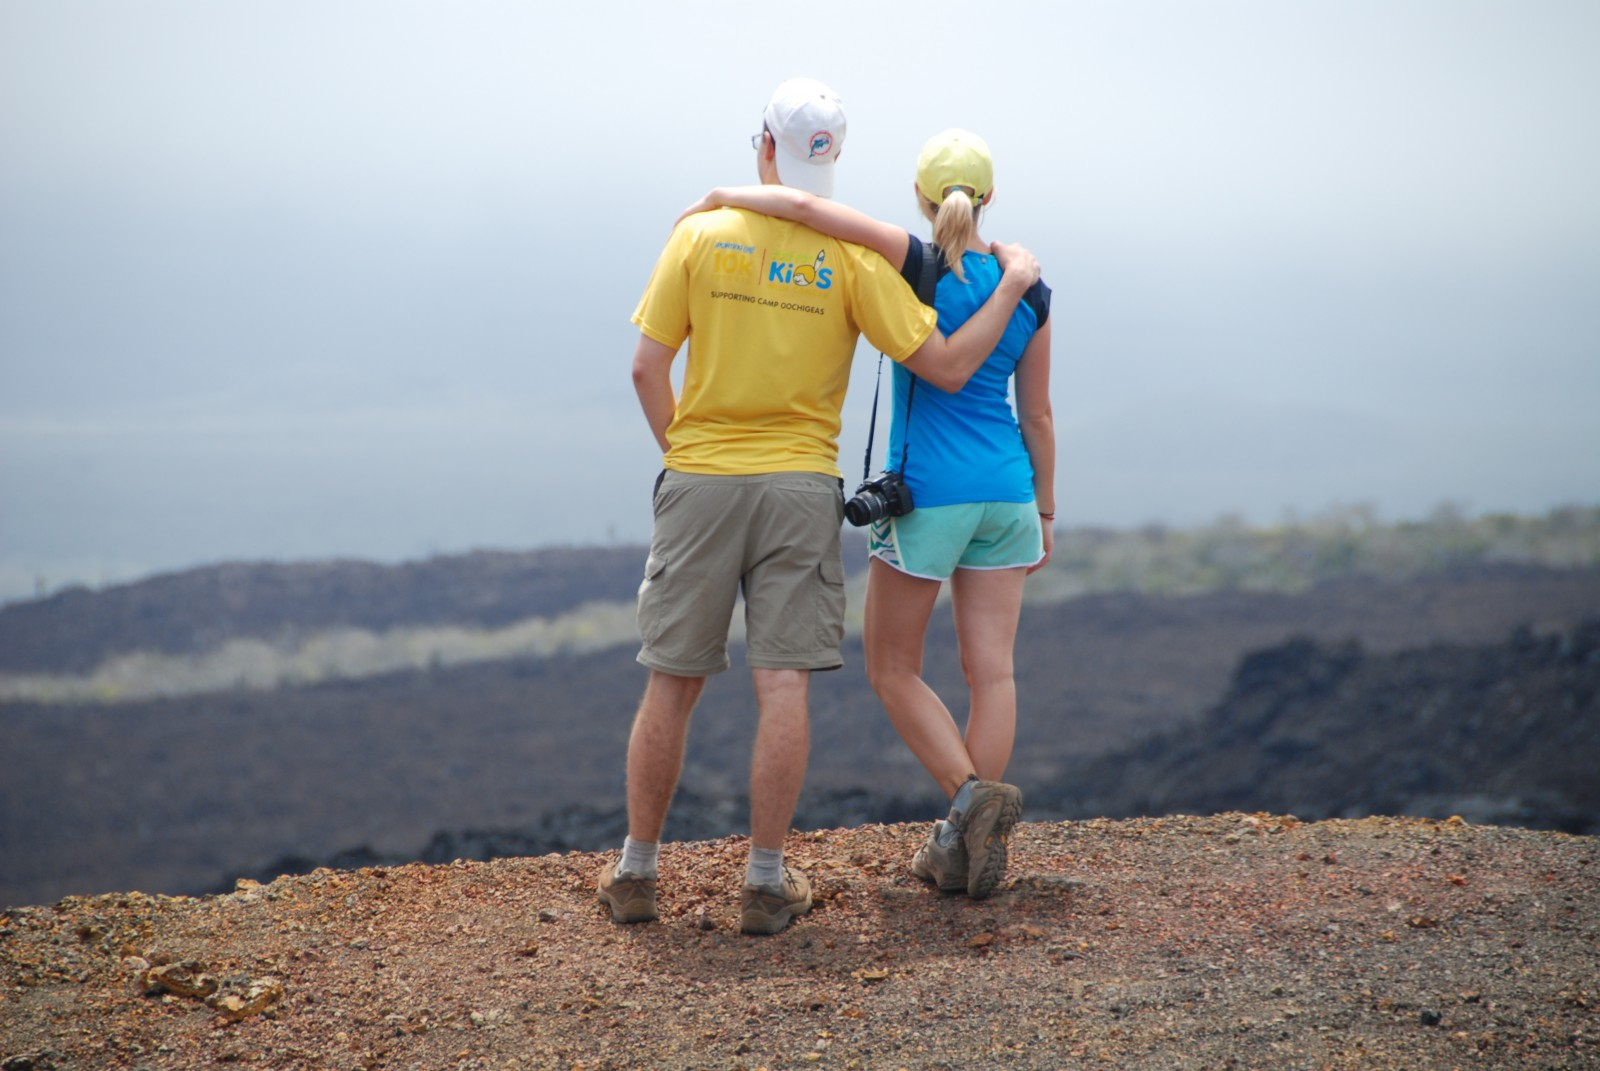 Not Kilimanjaro, but another volcano. This was at the top of the Sierra Negra volcano in the Galapagos Islands